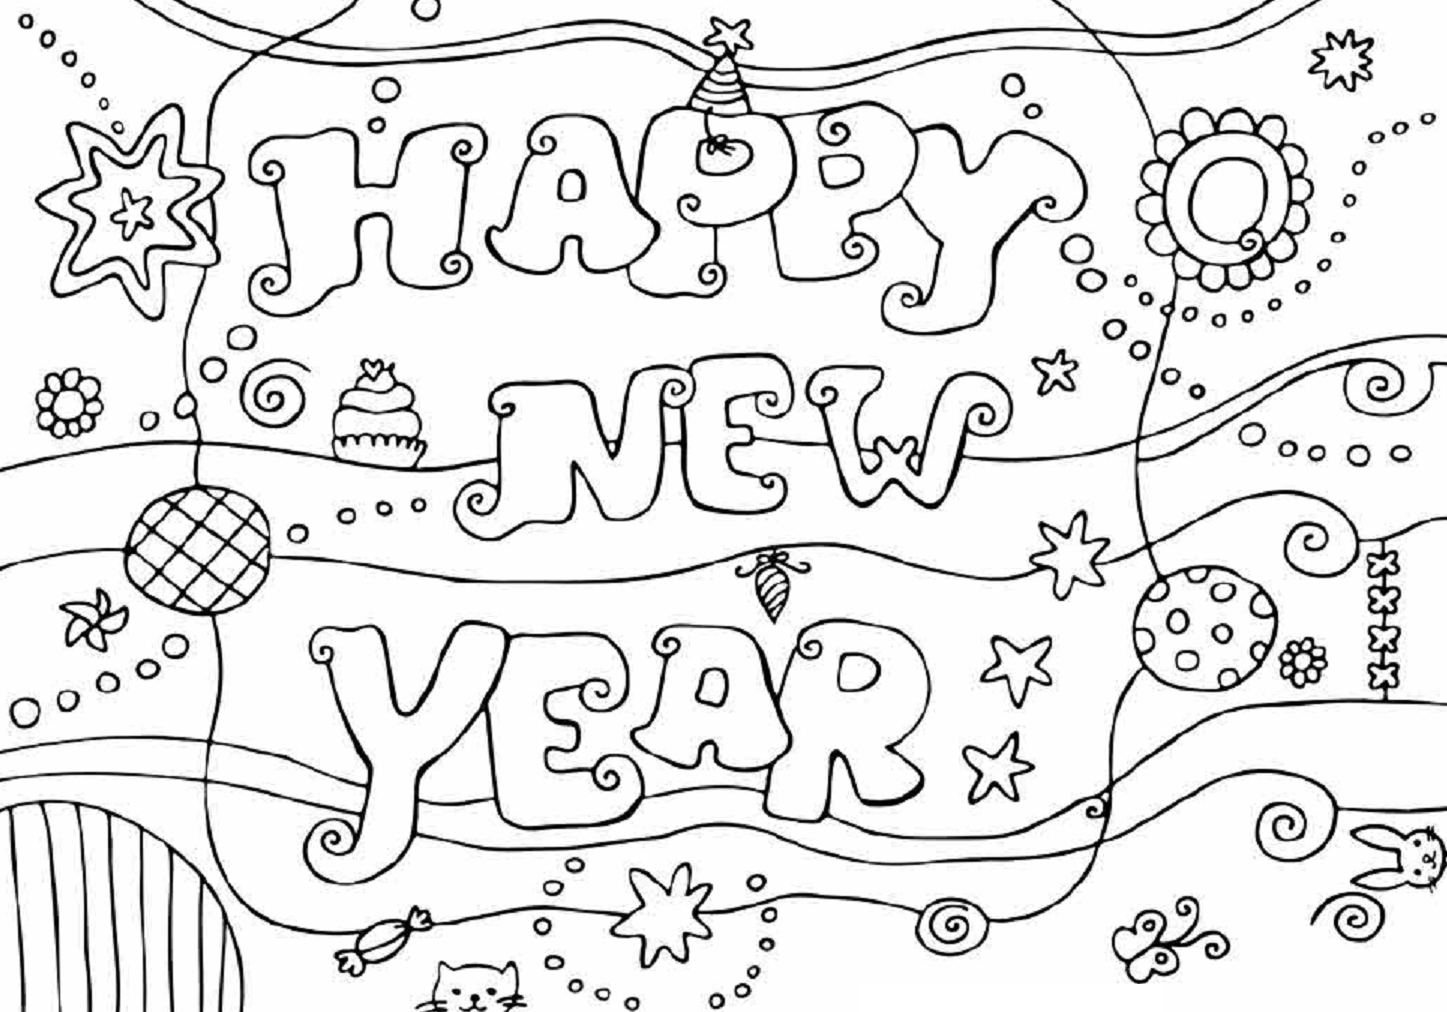 Colour drawing free hd wallpapers happy new year 2015 for New coloring pages